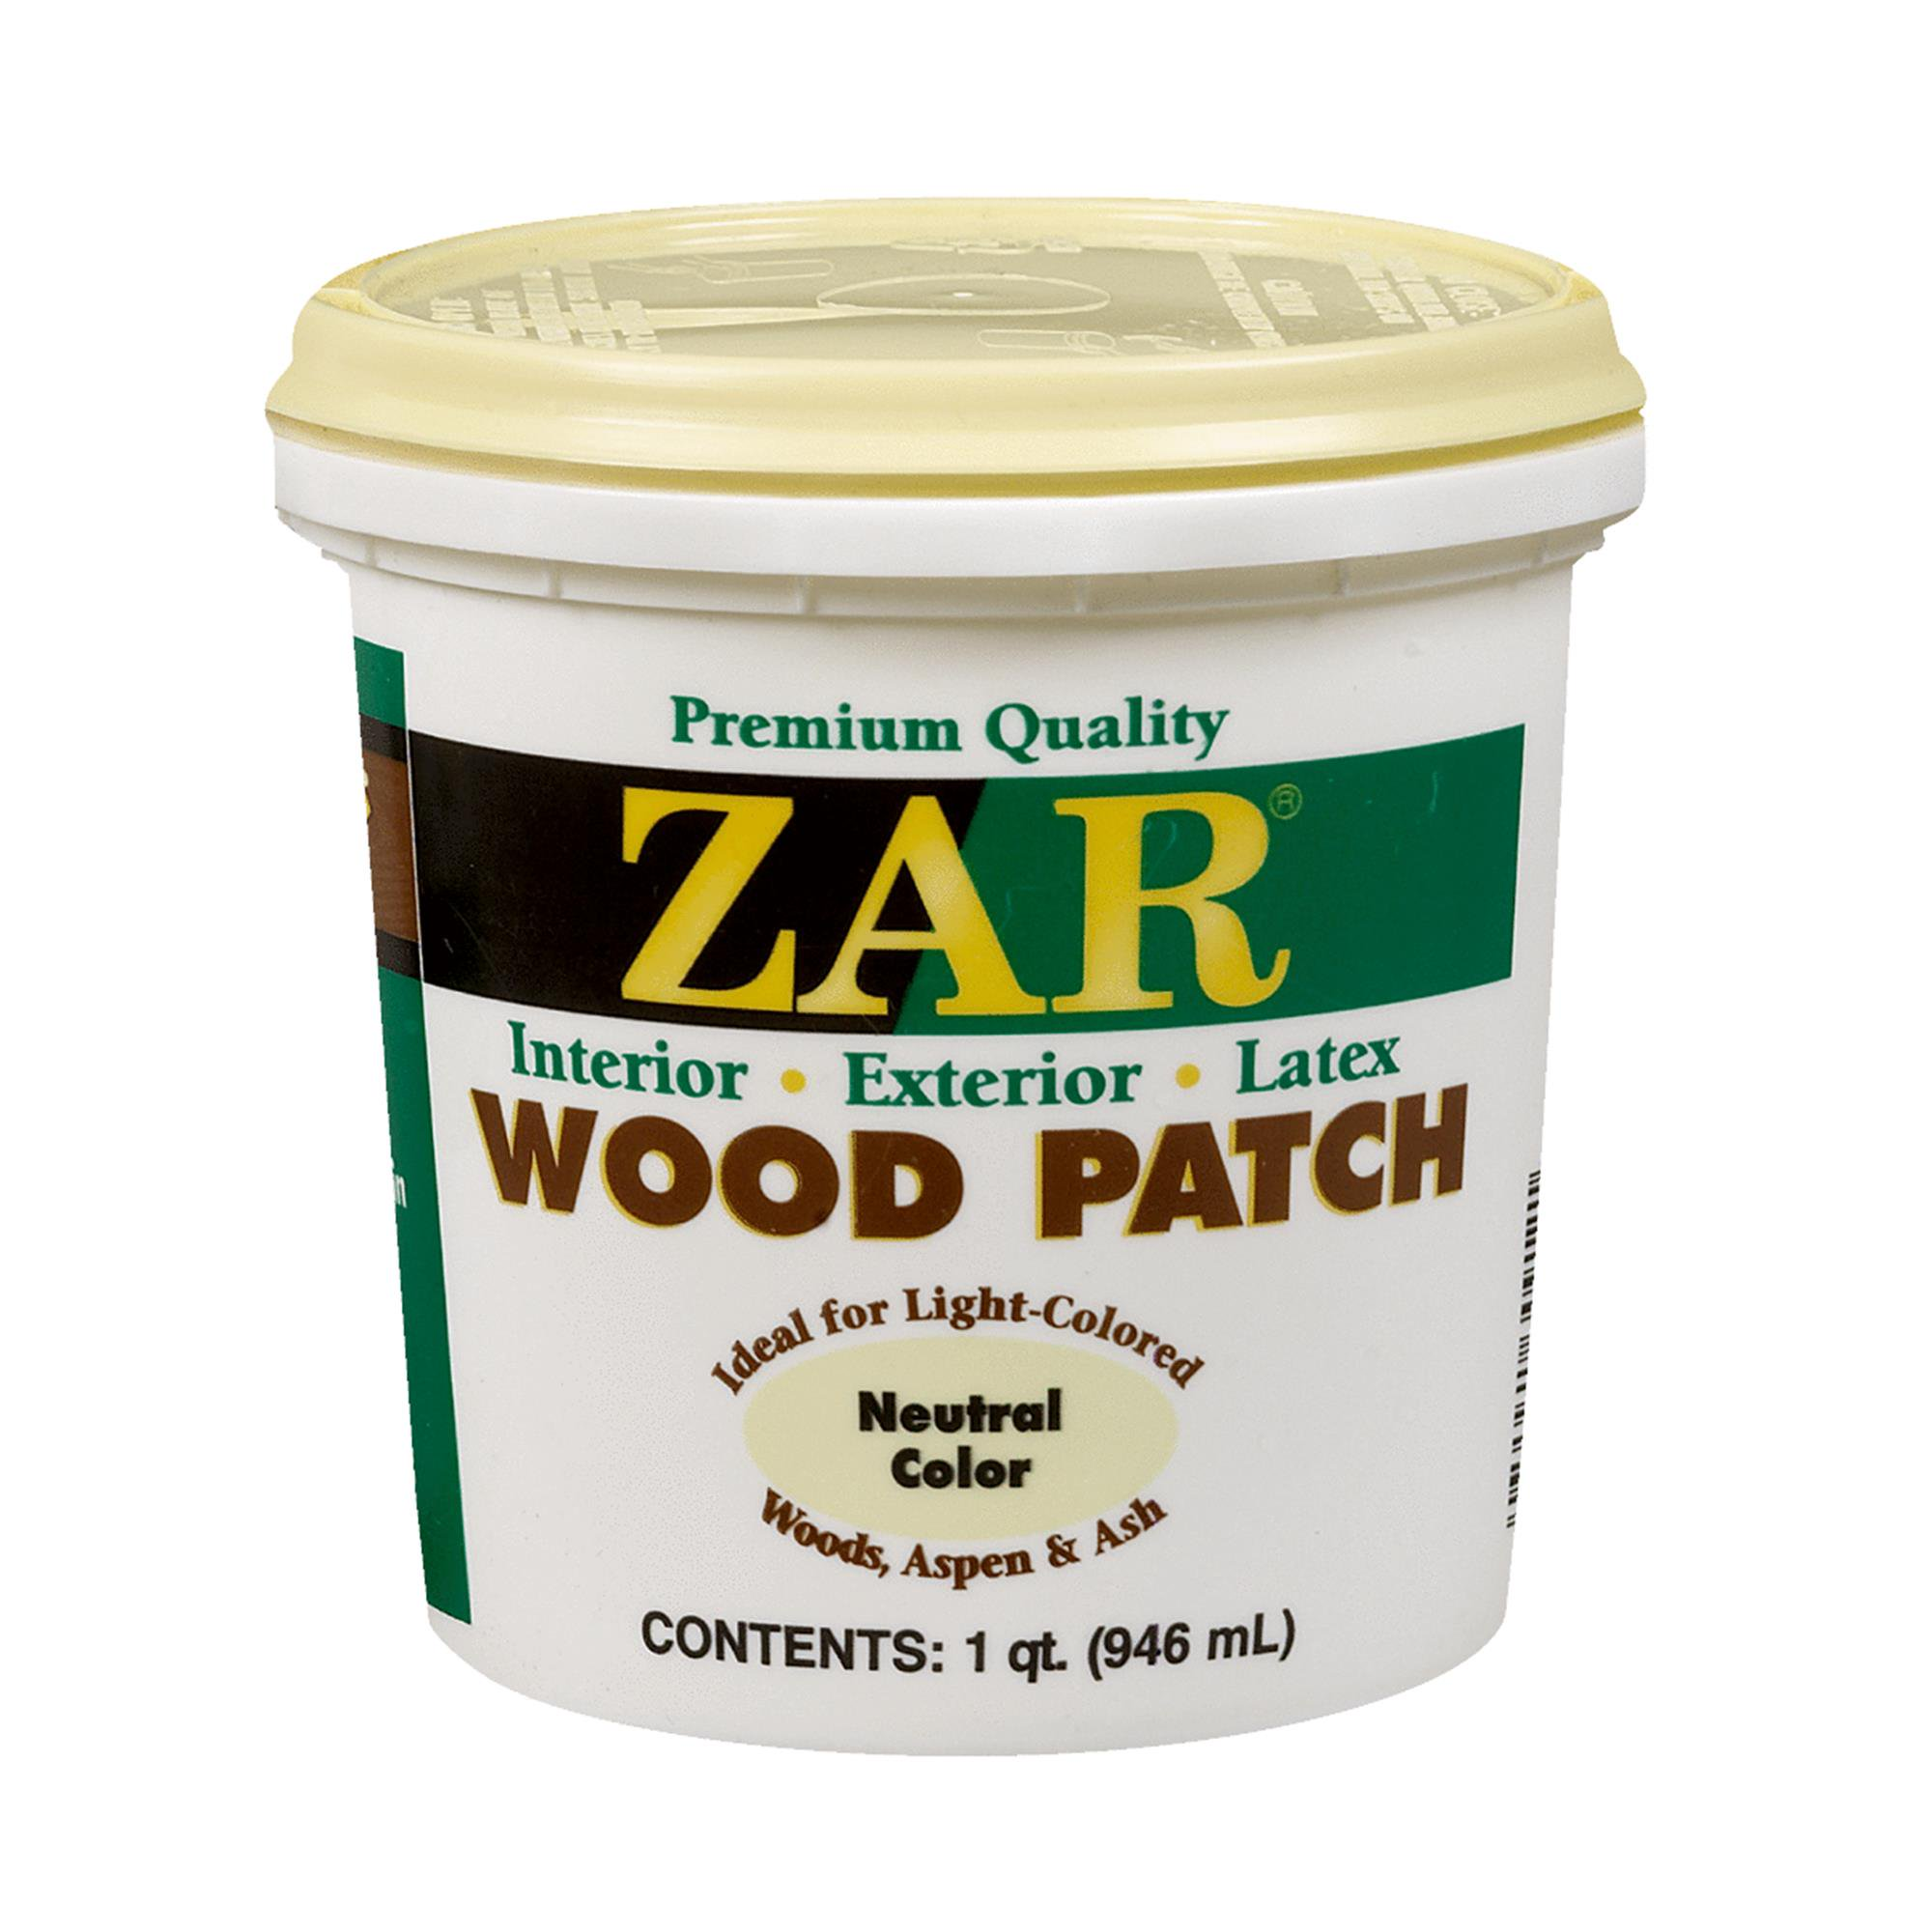 ZAR Latex Wood Patch Wood Filler